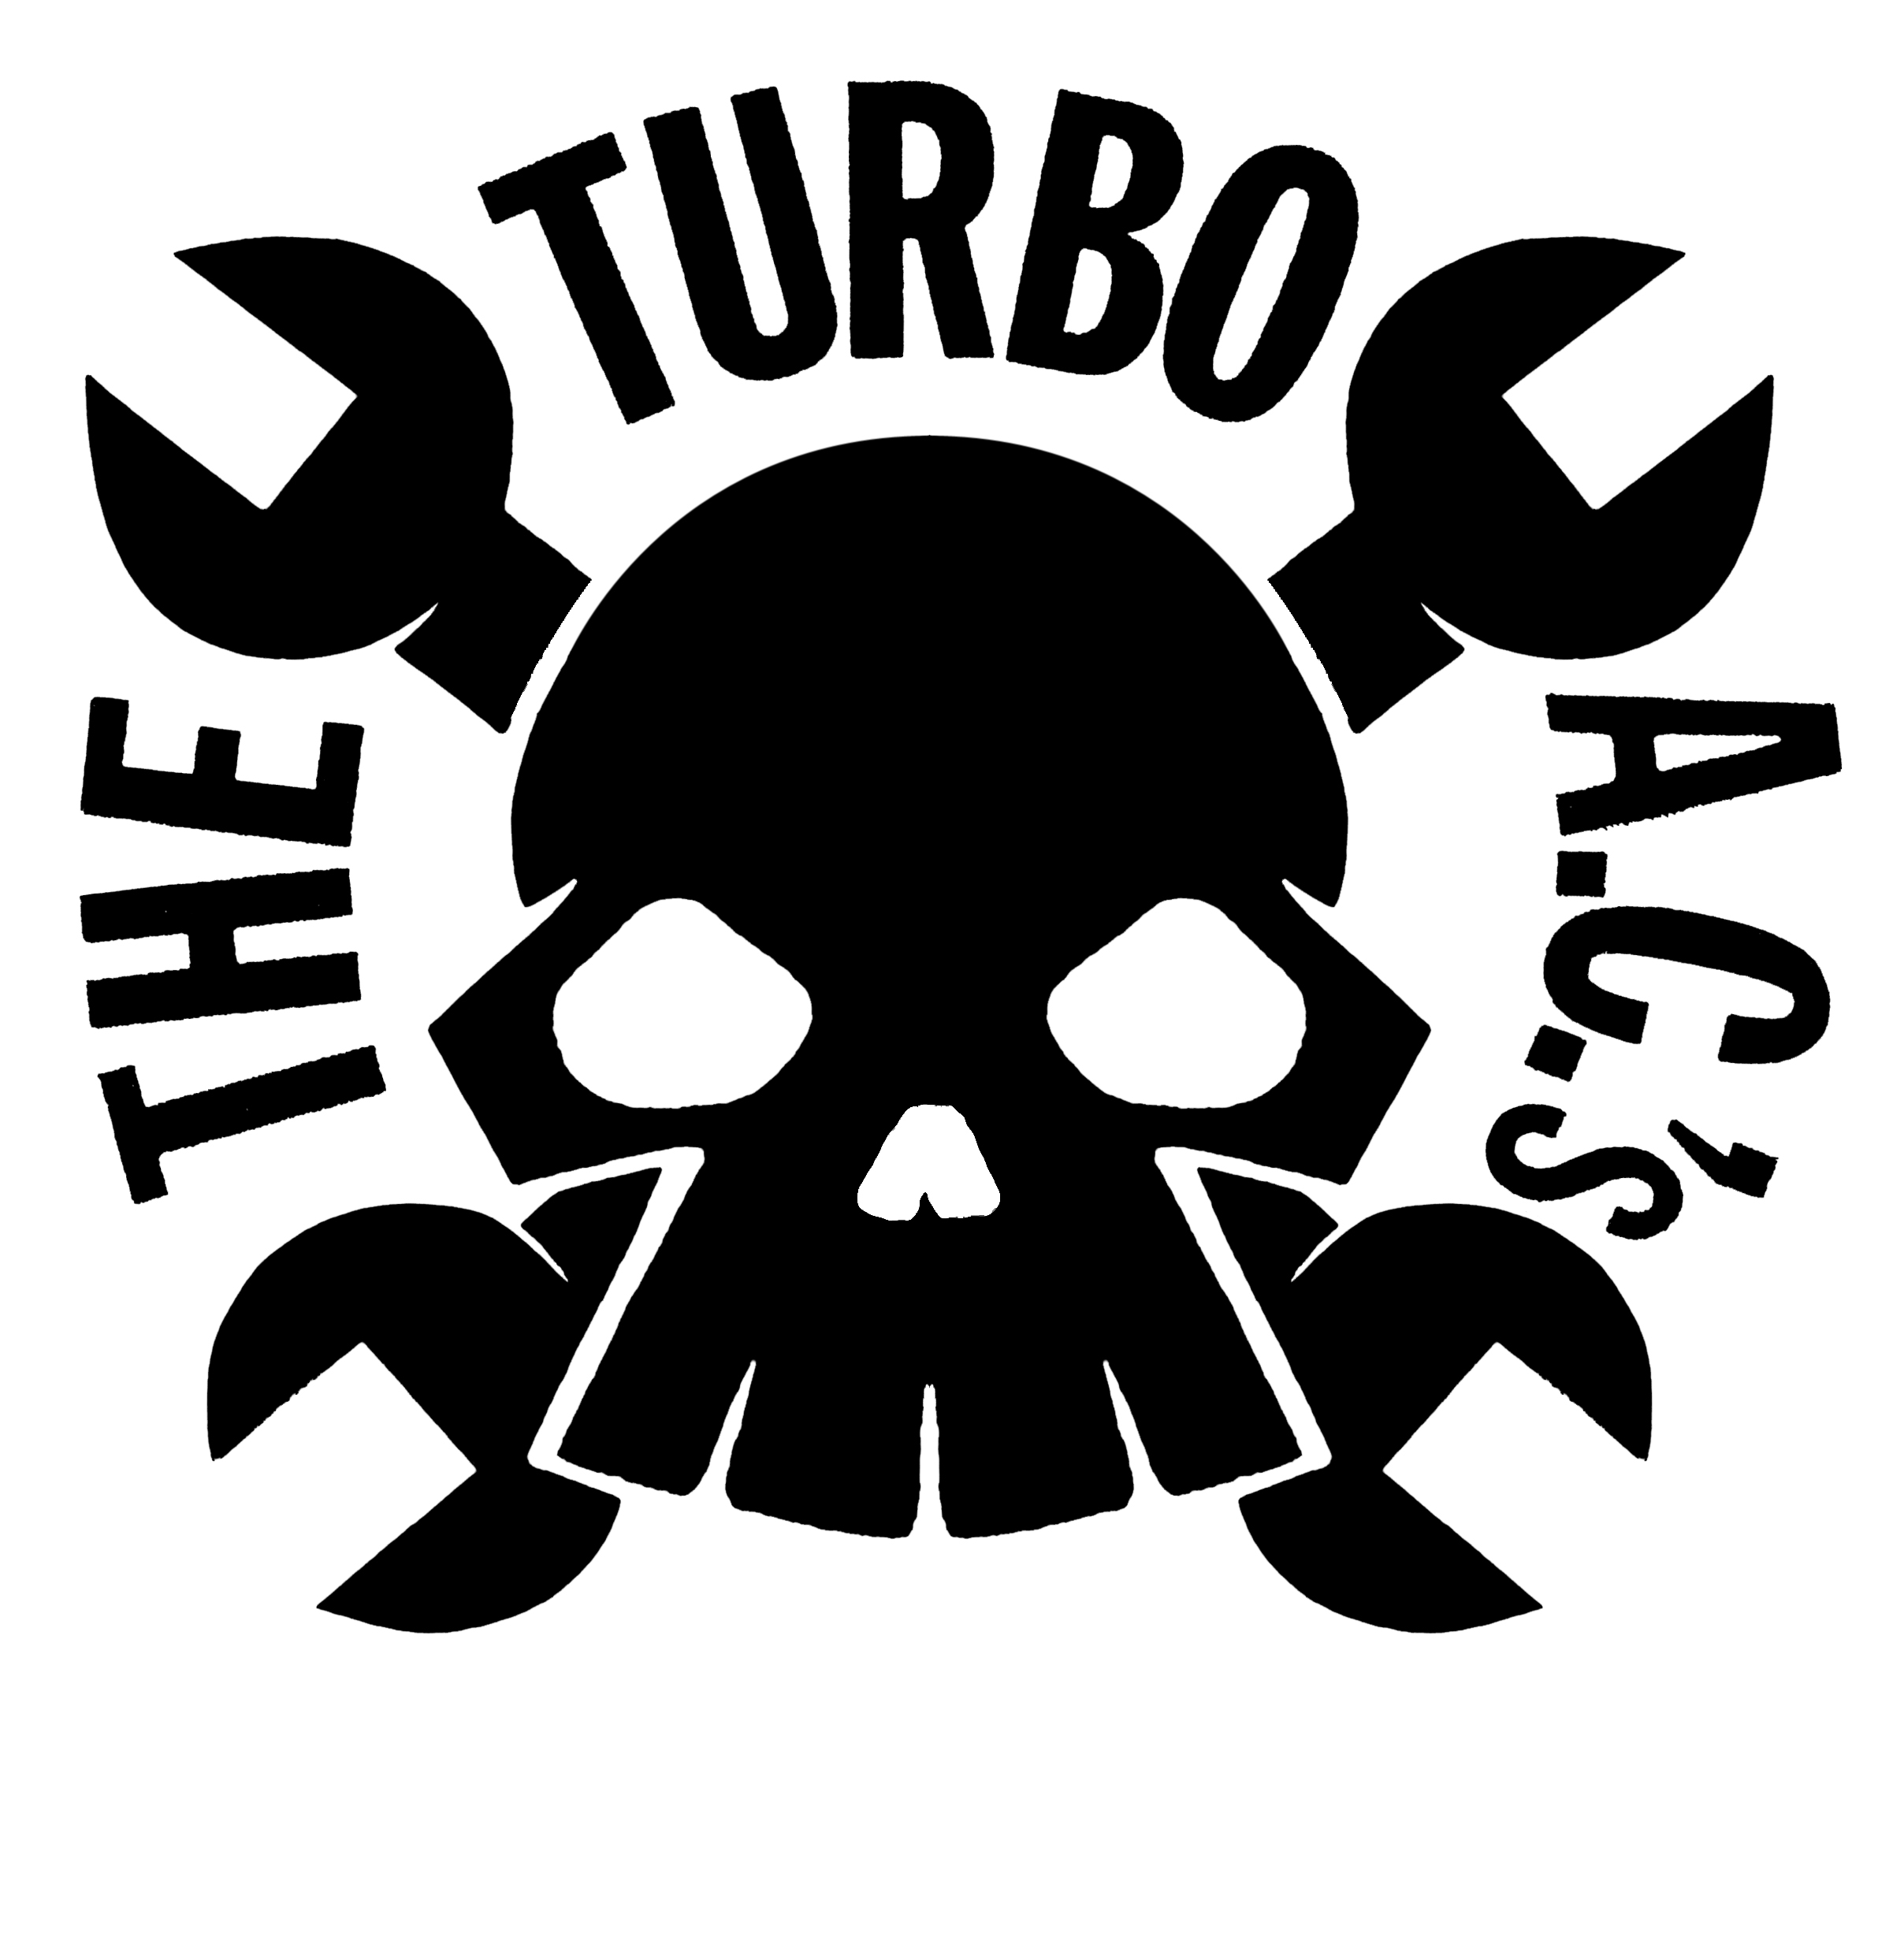 Pictures of Skull Logos With Names - #rock-cafe